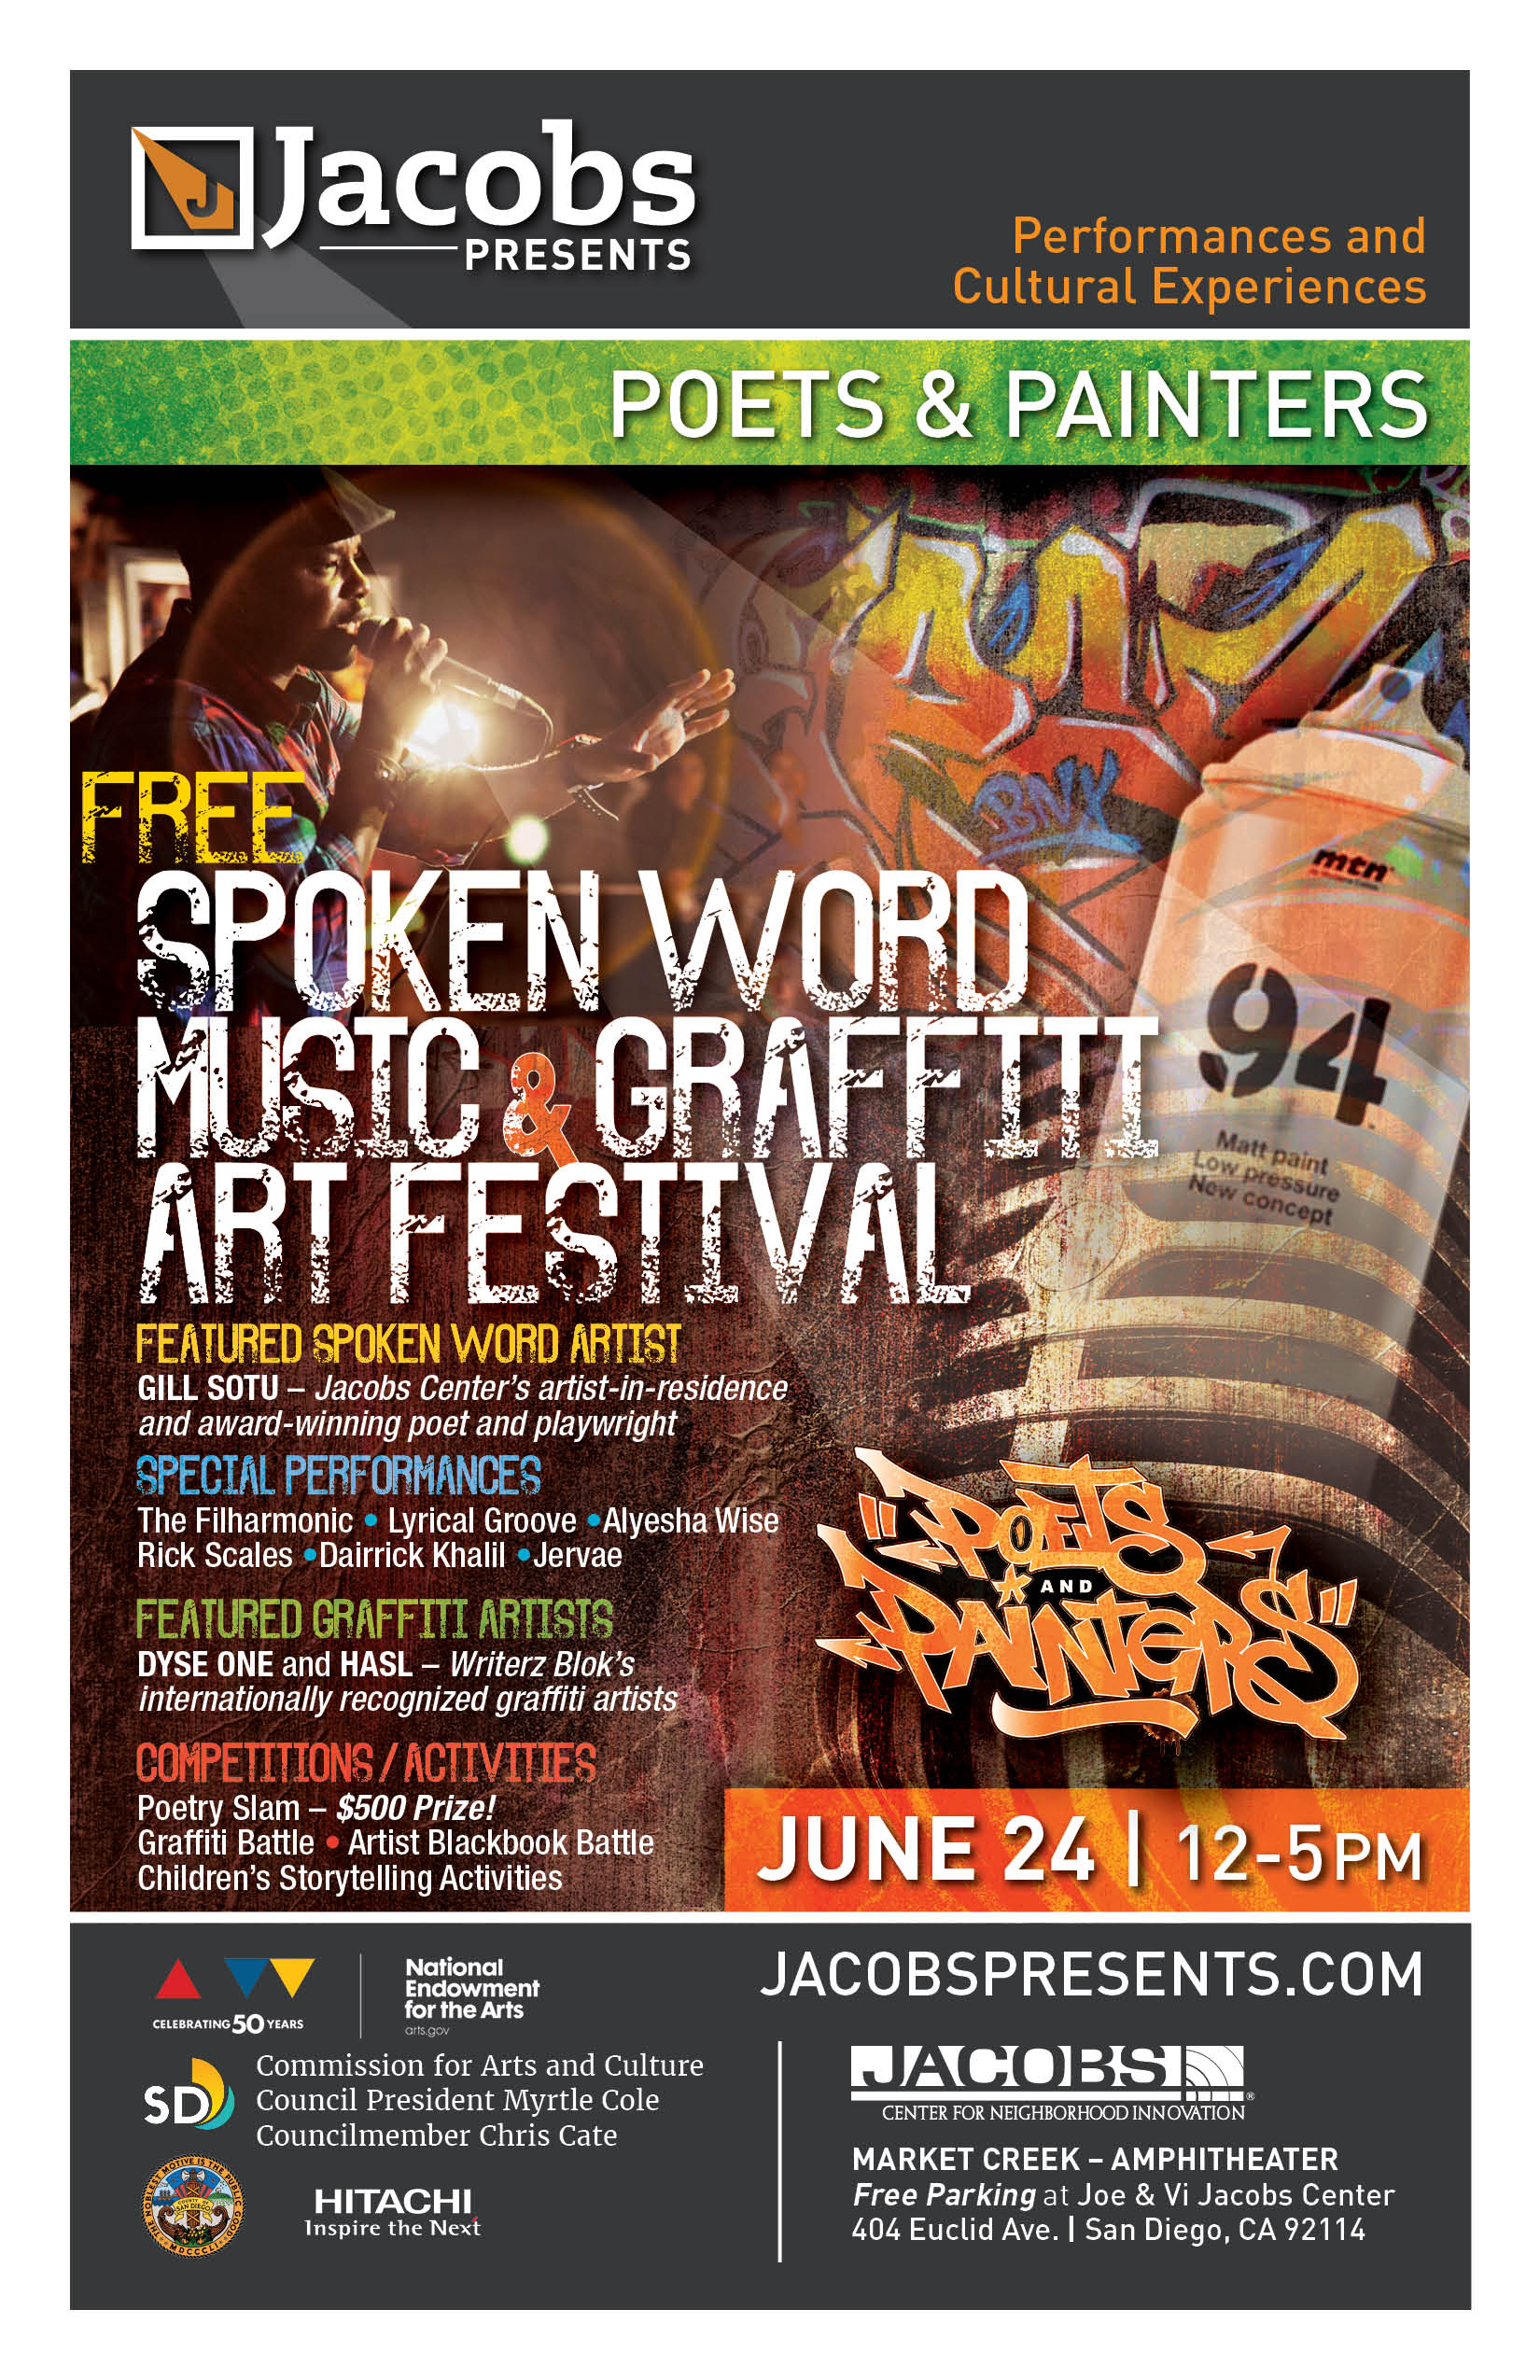 Poets & Painters Spoken Word, Music, and Graffiti Arts Festival